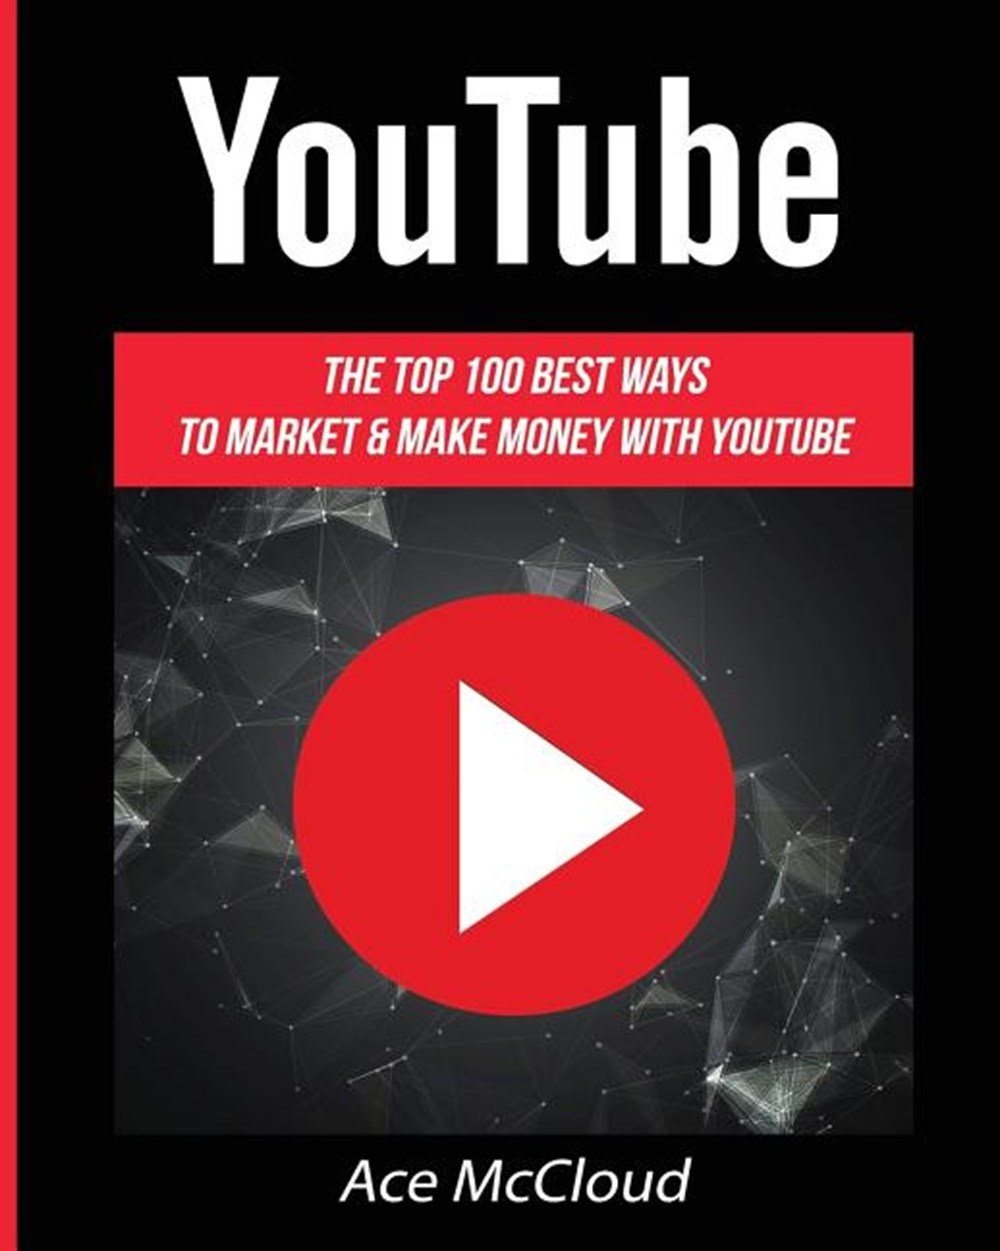 YouTube The Top 100 Best Ways To Market & Make Money With YouTube